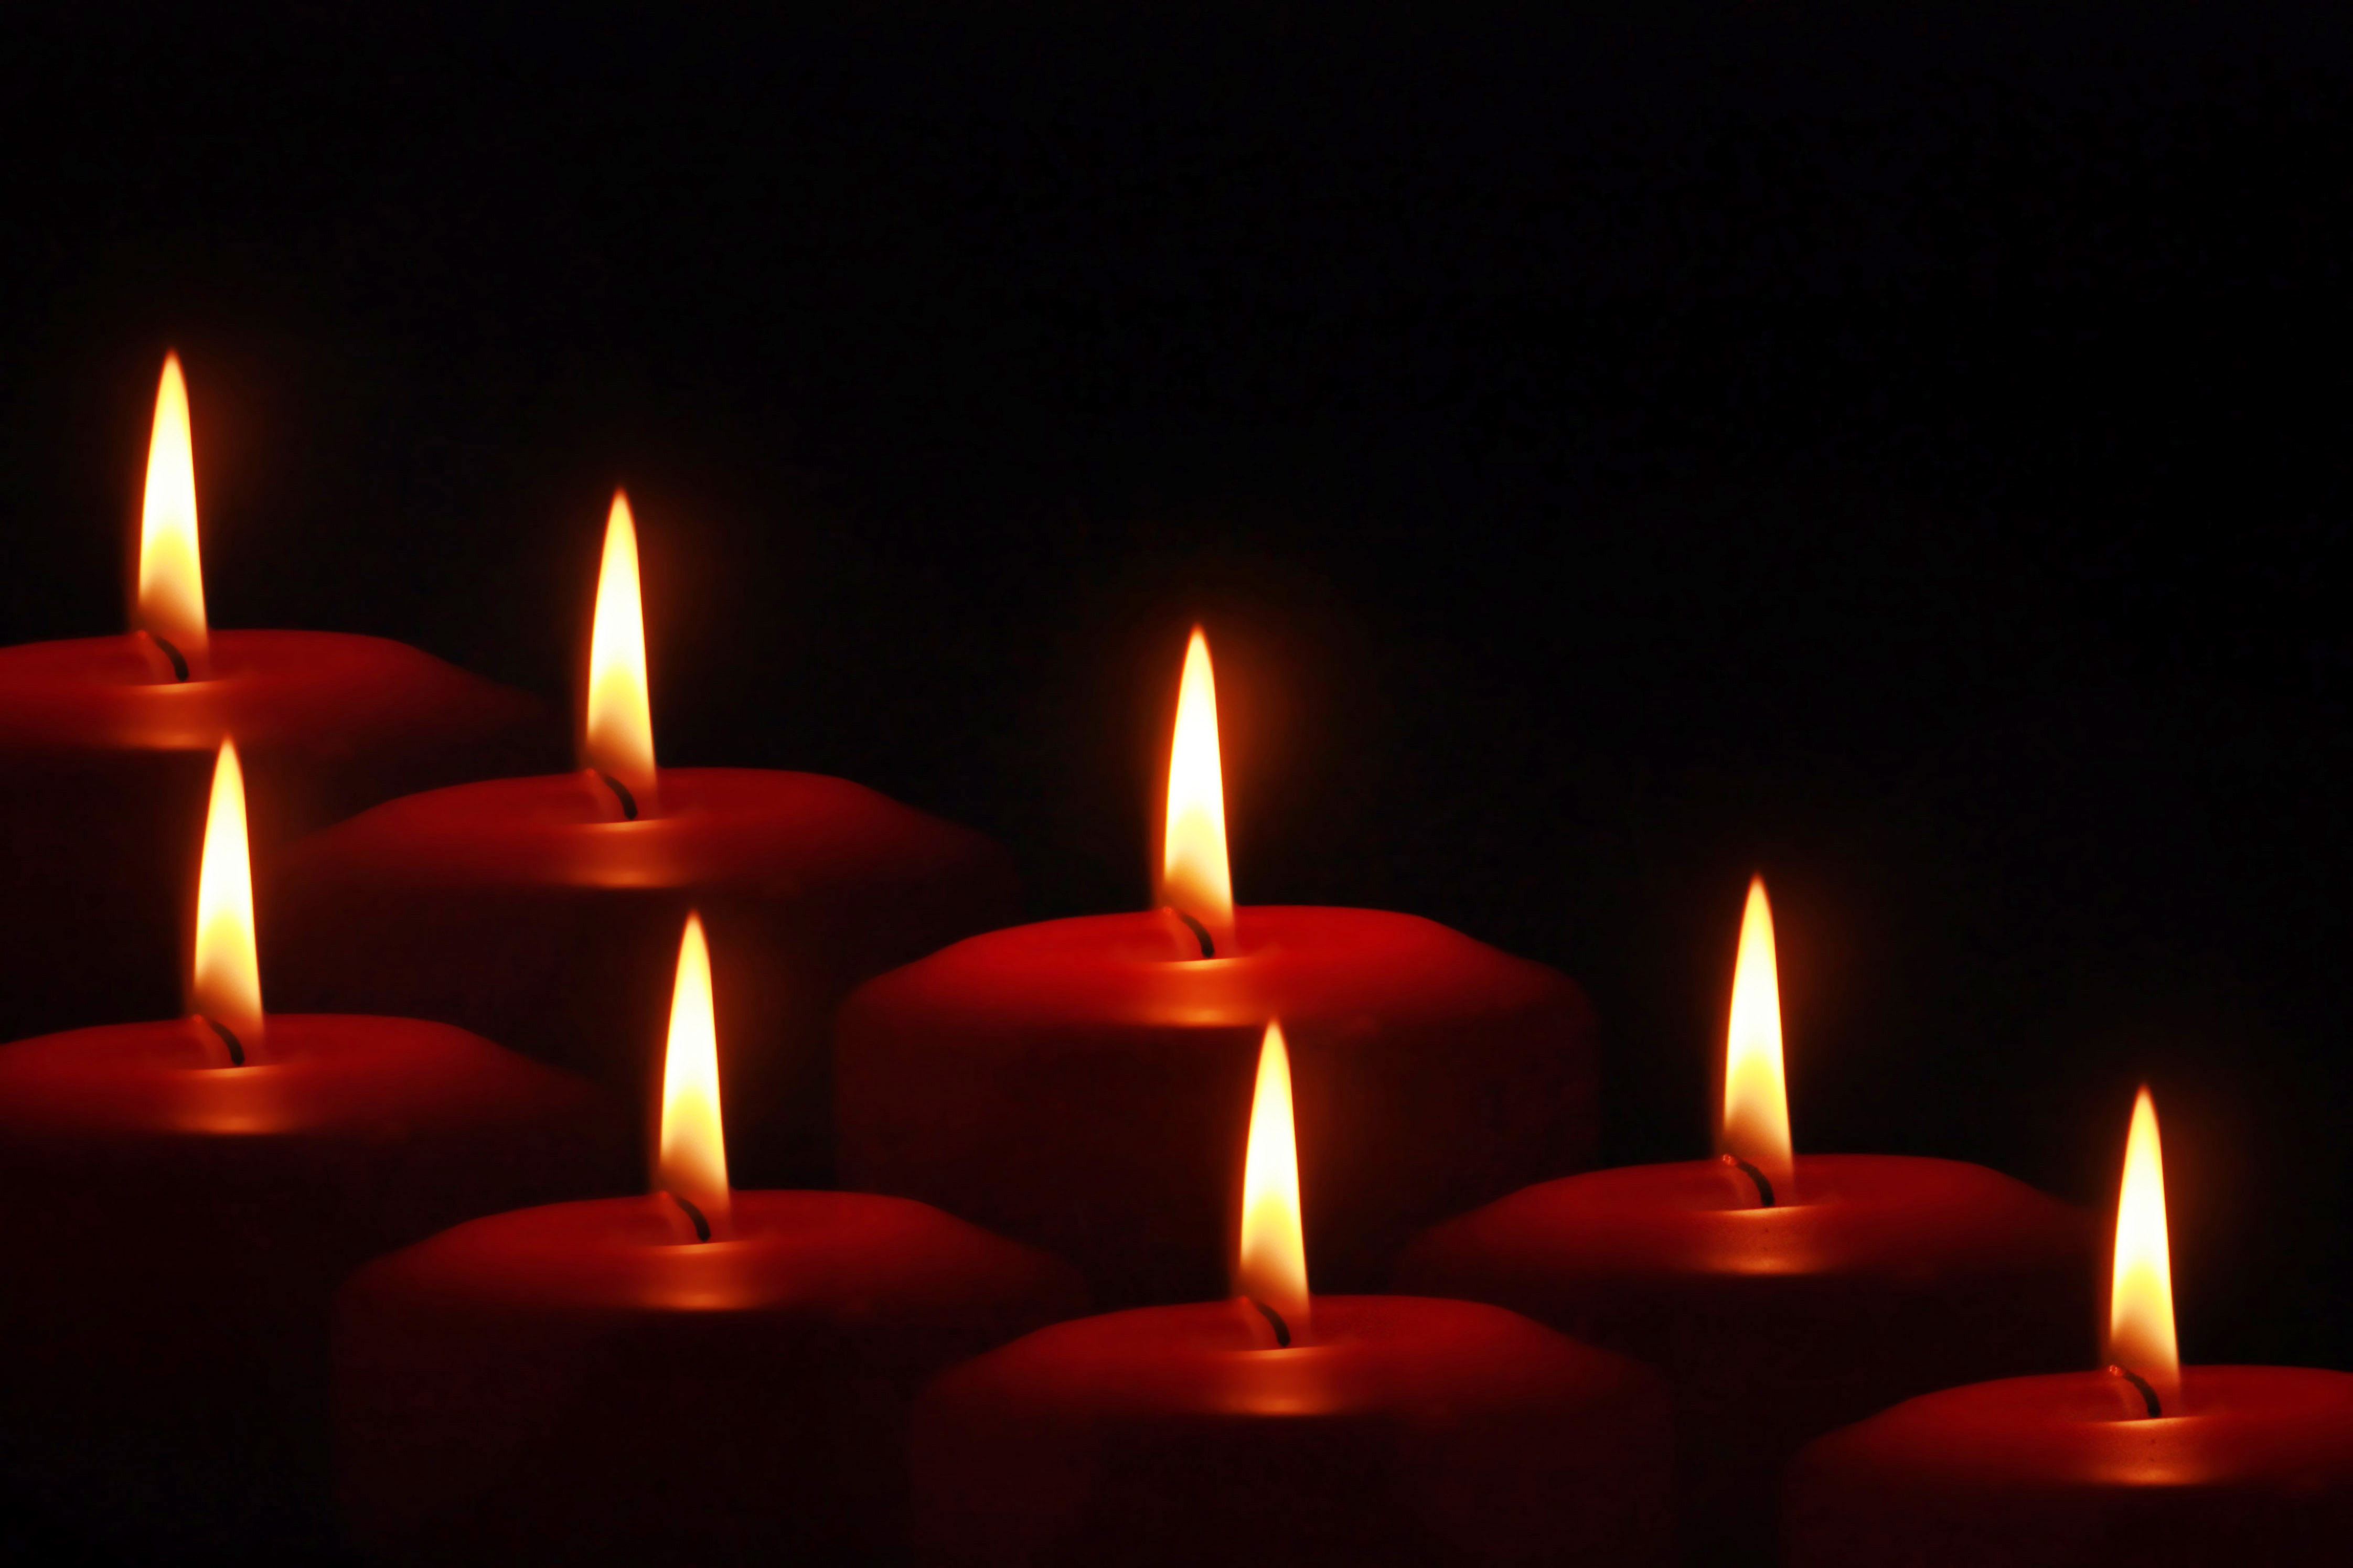 19 Great Candle Themed Christmas Wallpaper or Xmas Background 4486x2990